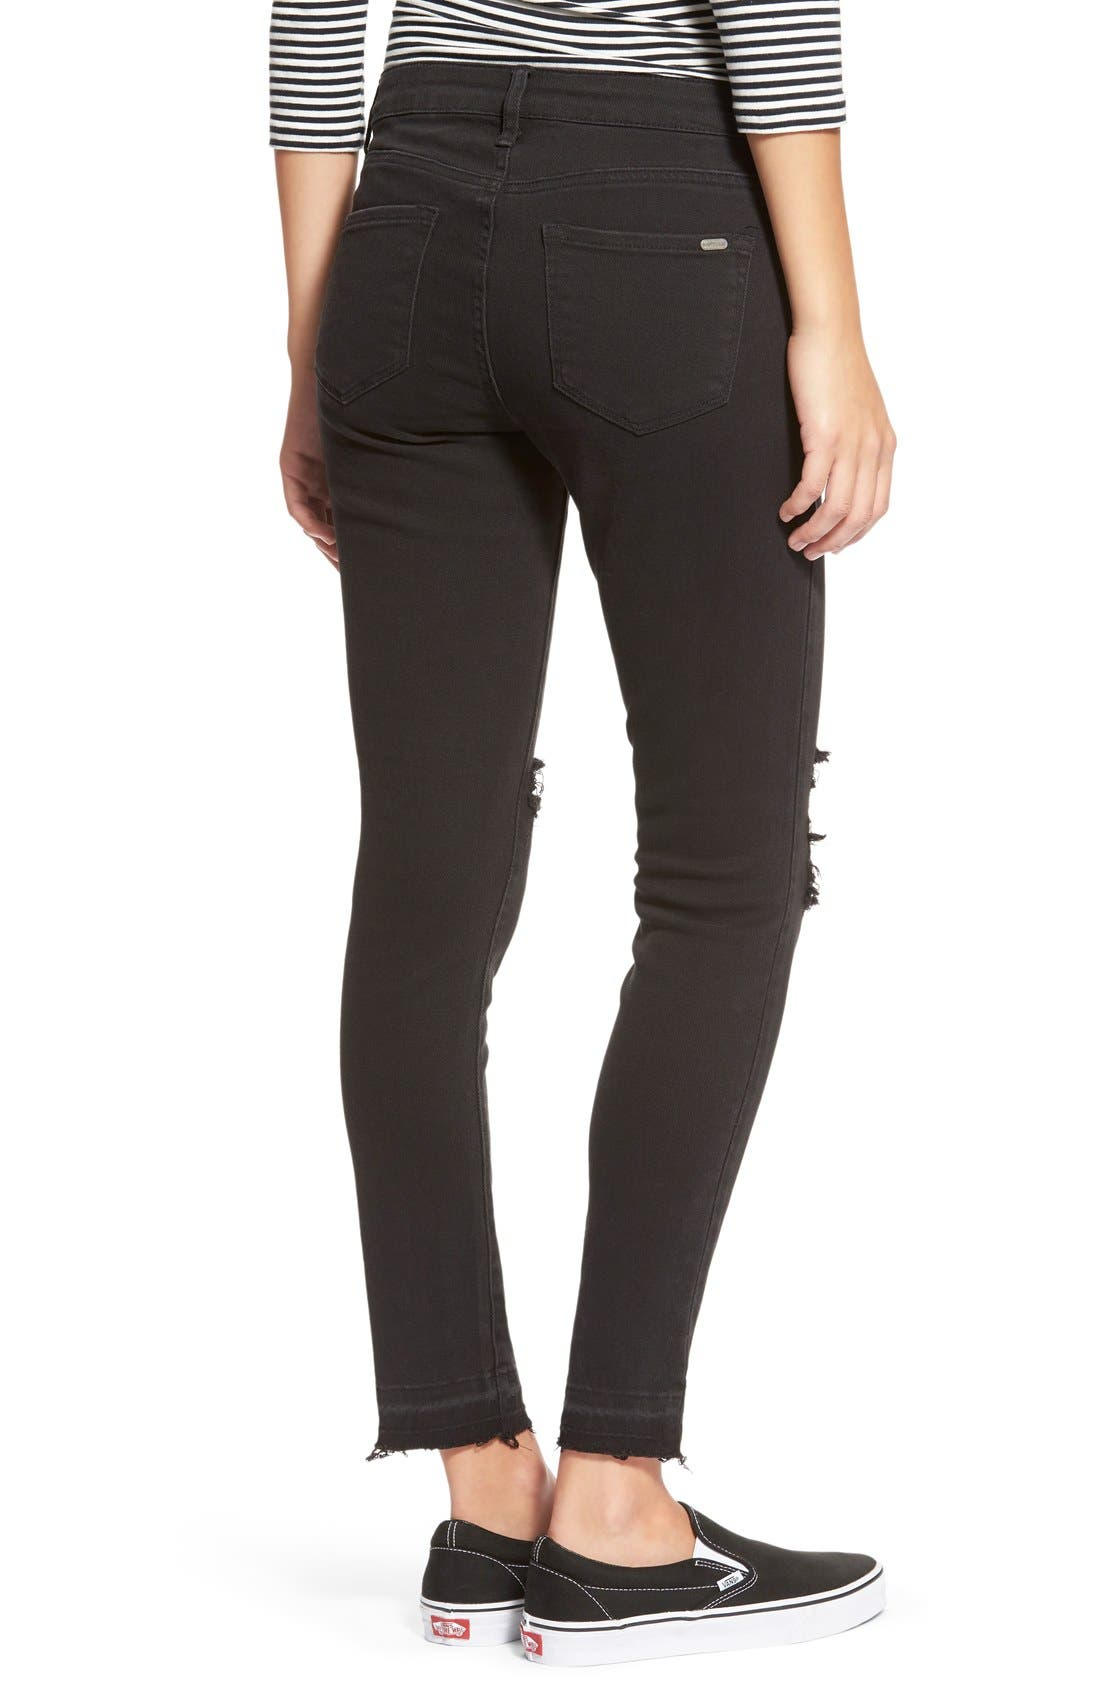 STSBlue 'Emma' Distressed High Rise Ankle Skinny Jeans,                             Alternate thumbnail 3, color,                             Black